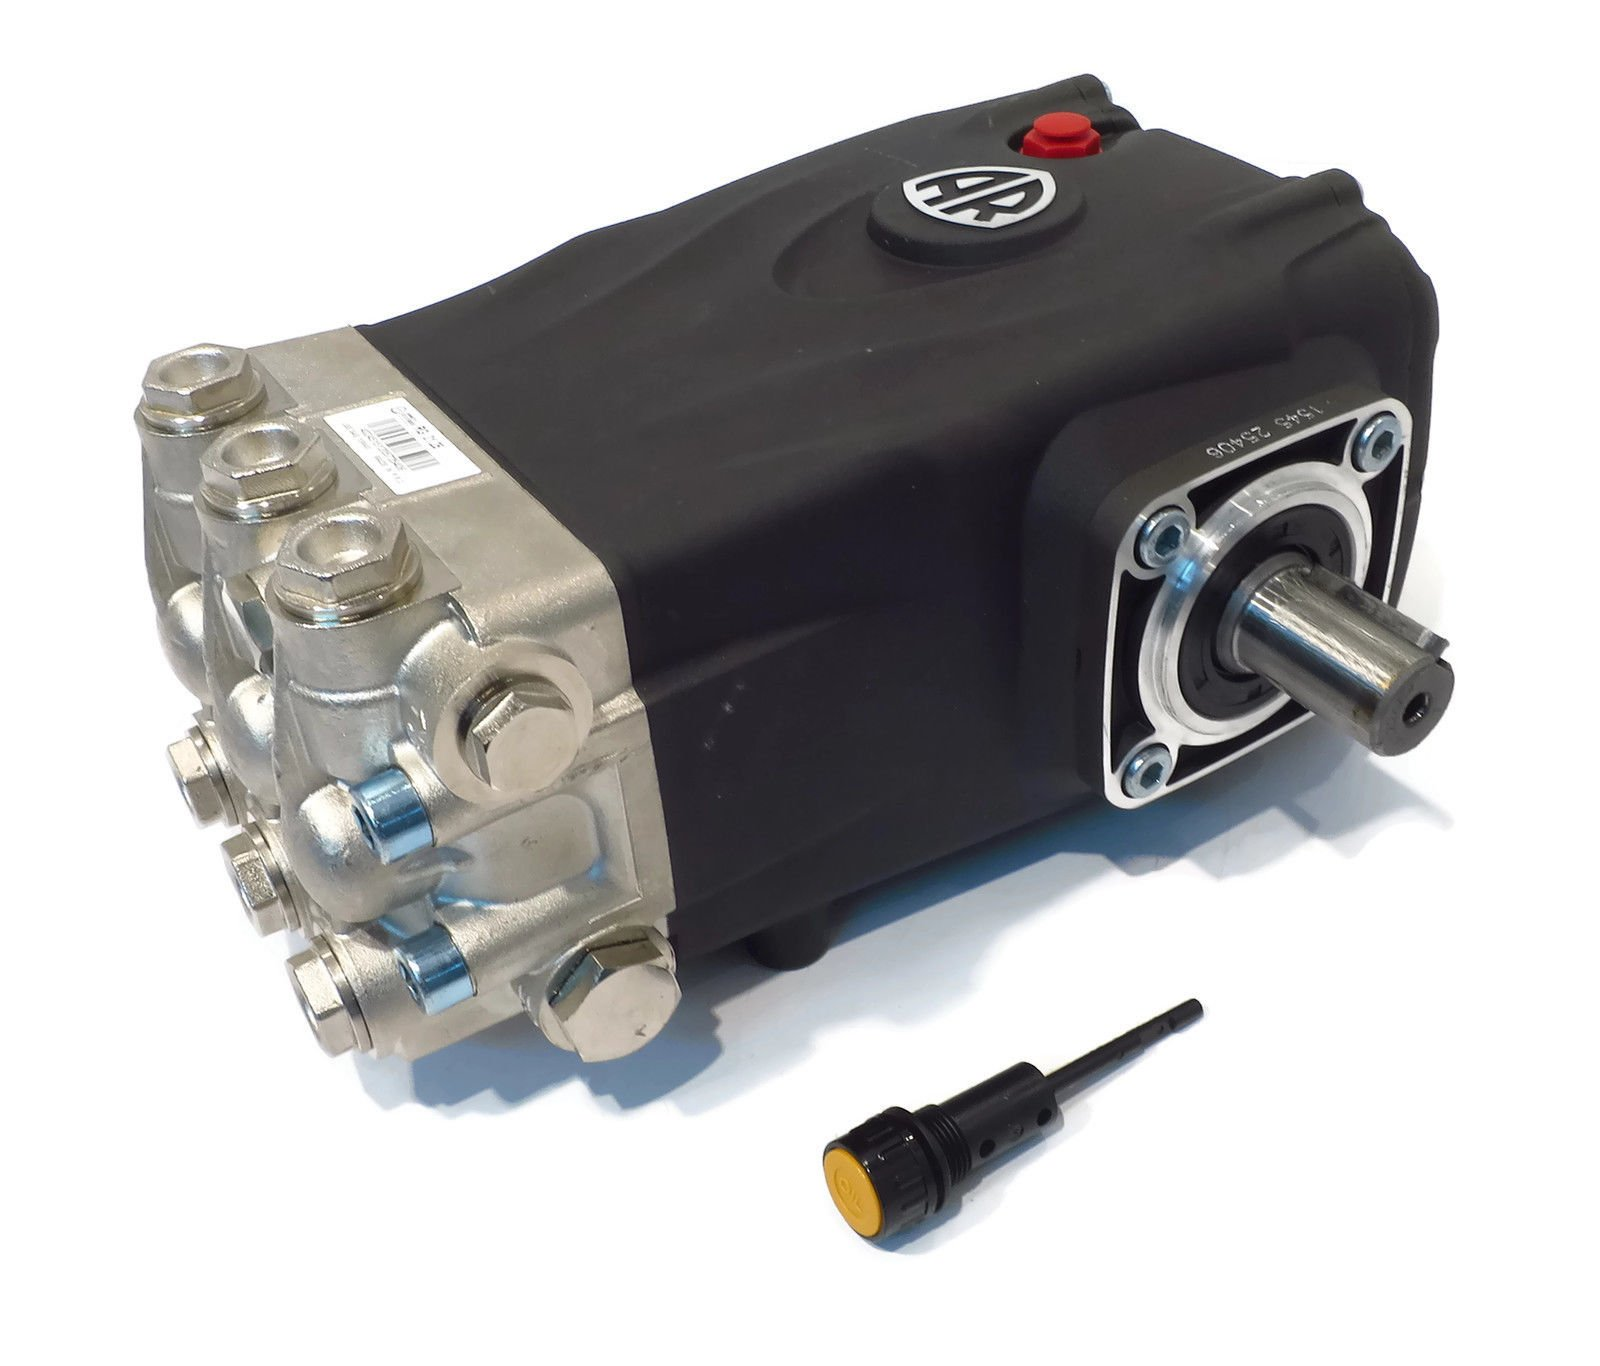 Annovi Reververi Pressure Washer Pump Replaces Interpump WS202-3600 PSI, 5.5 GPM Solid Shaft by The ROP Shop